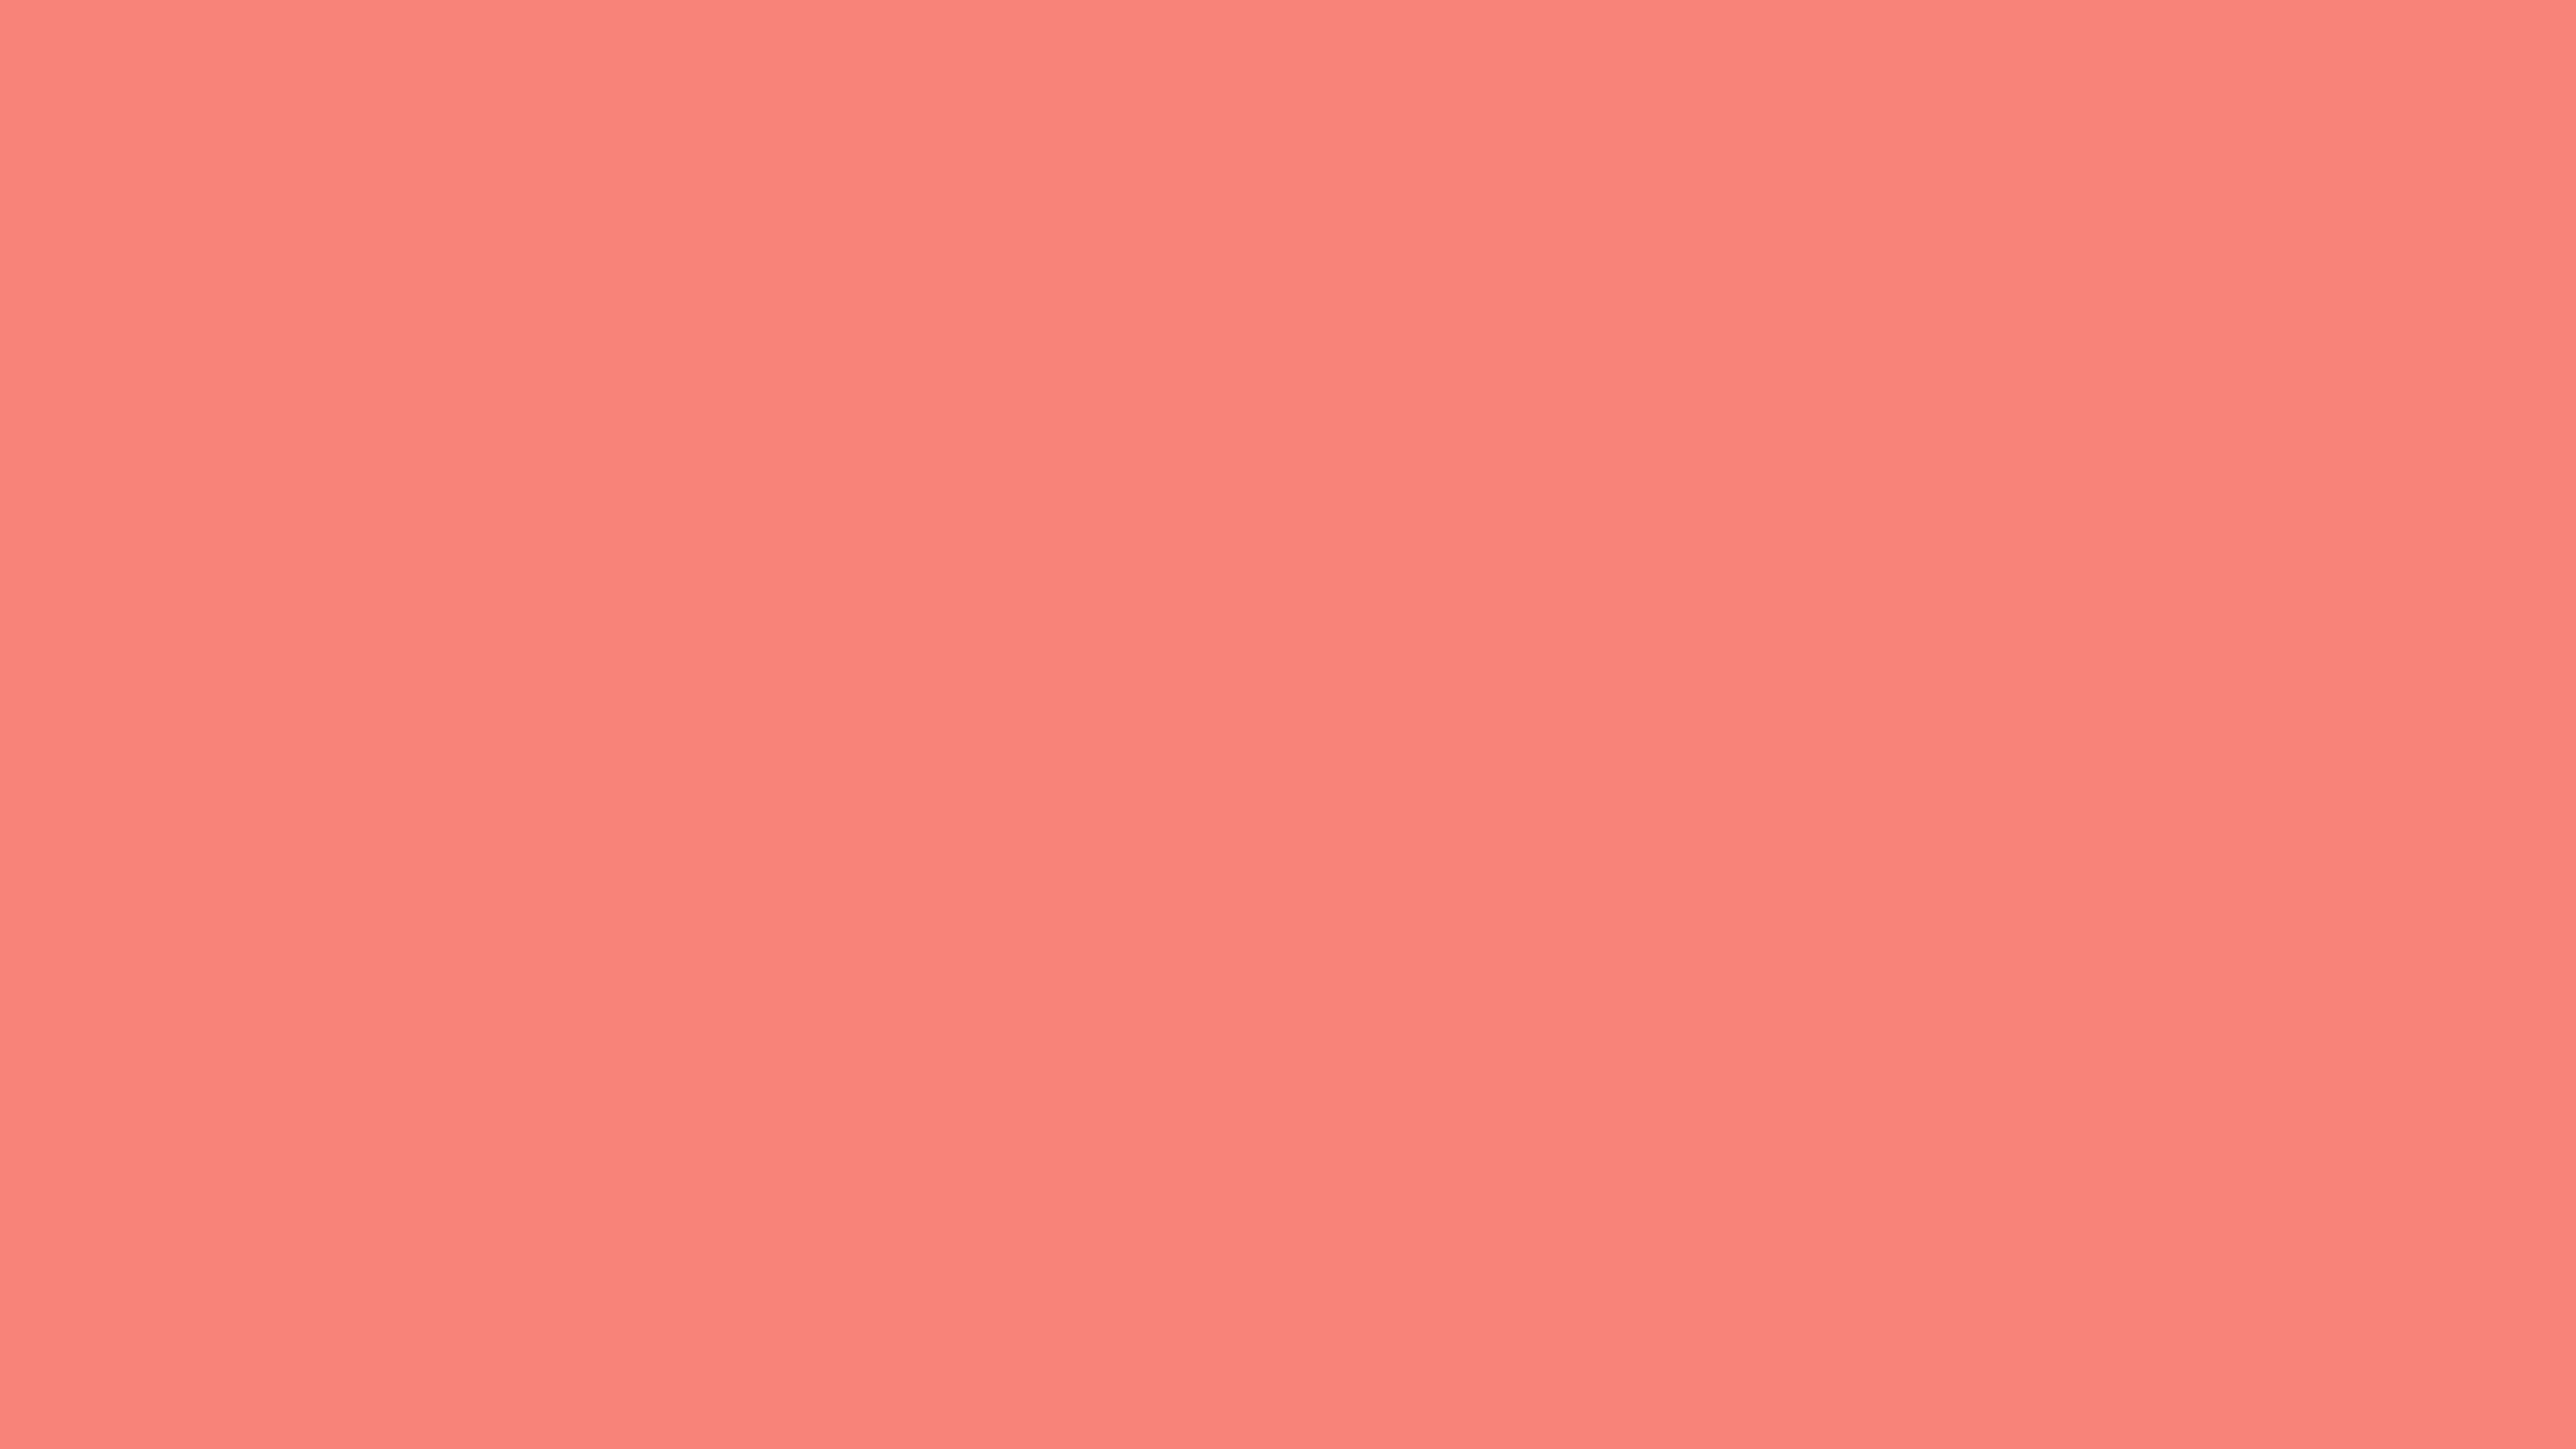 5120x2880 Congo Pink Solid Color Background